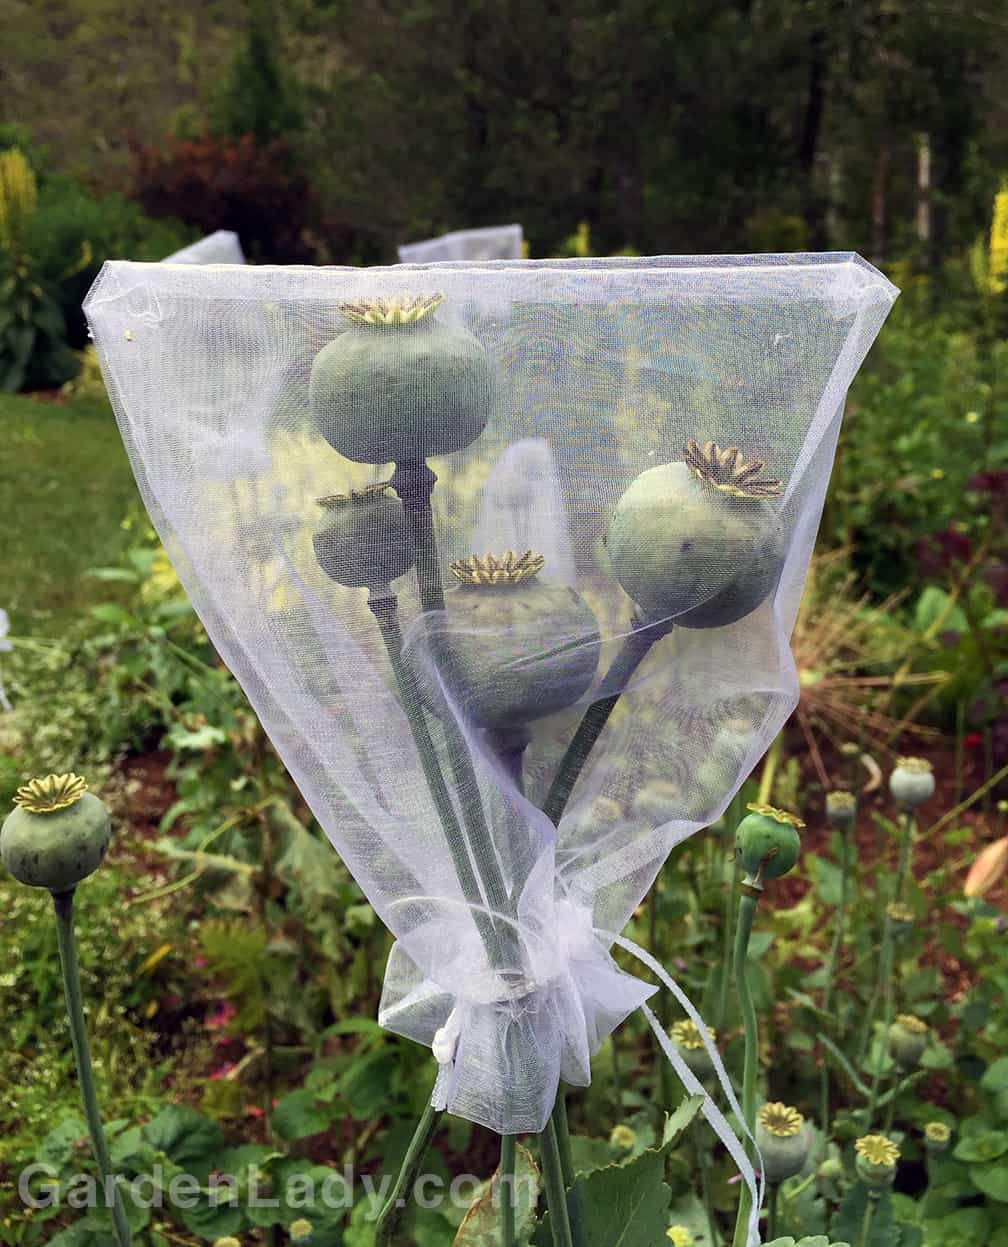 I used small gift bags, available from craft stores and places that sell wedding supplies, to protect selected pods from Chip and Dale. They are light weight, let in the sun and air, and have a drawstring for quick application and closure.